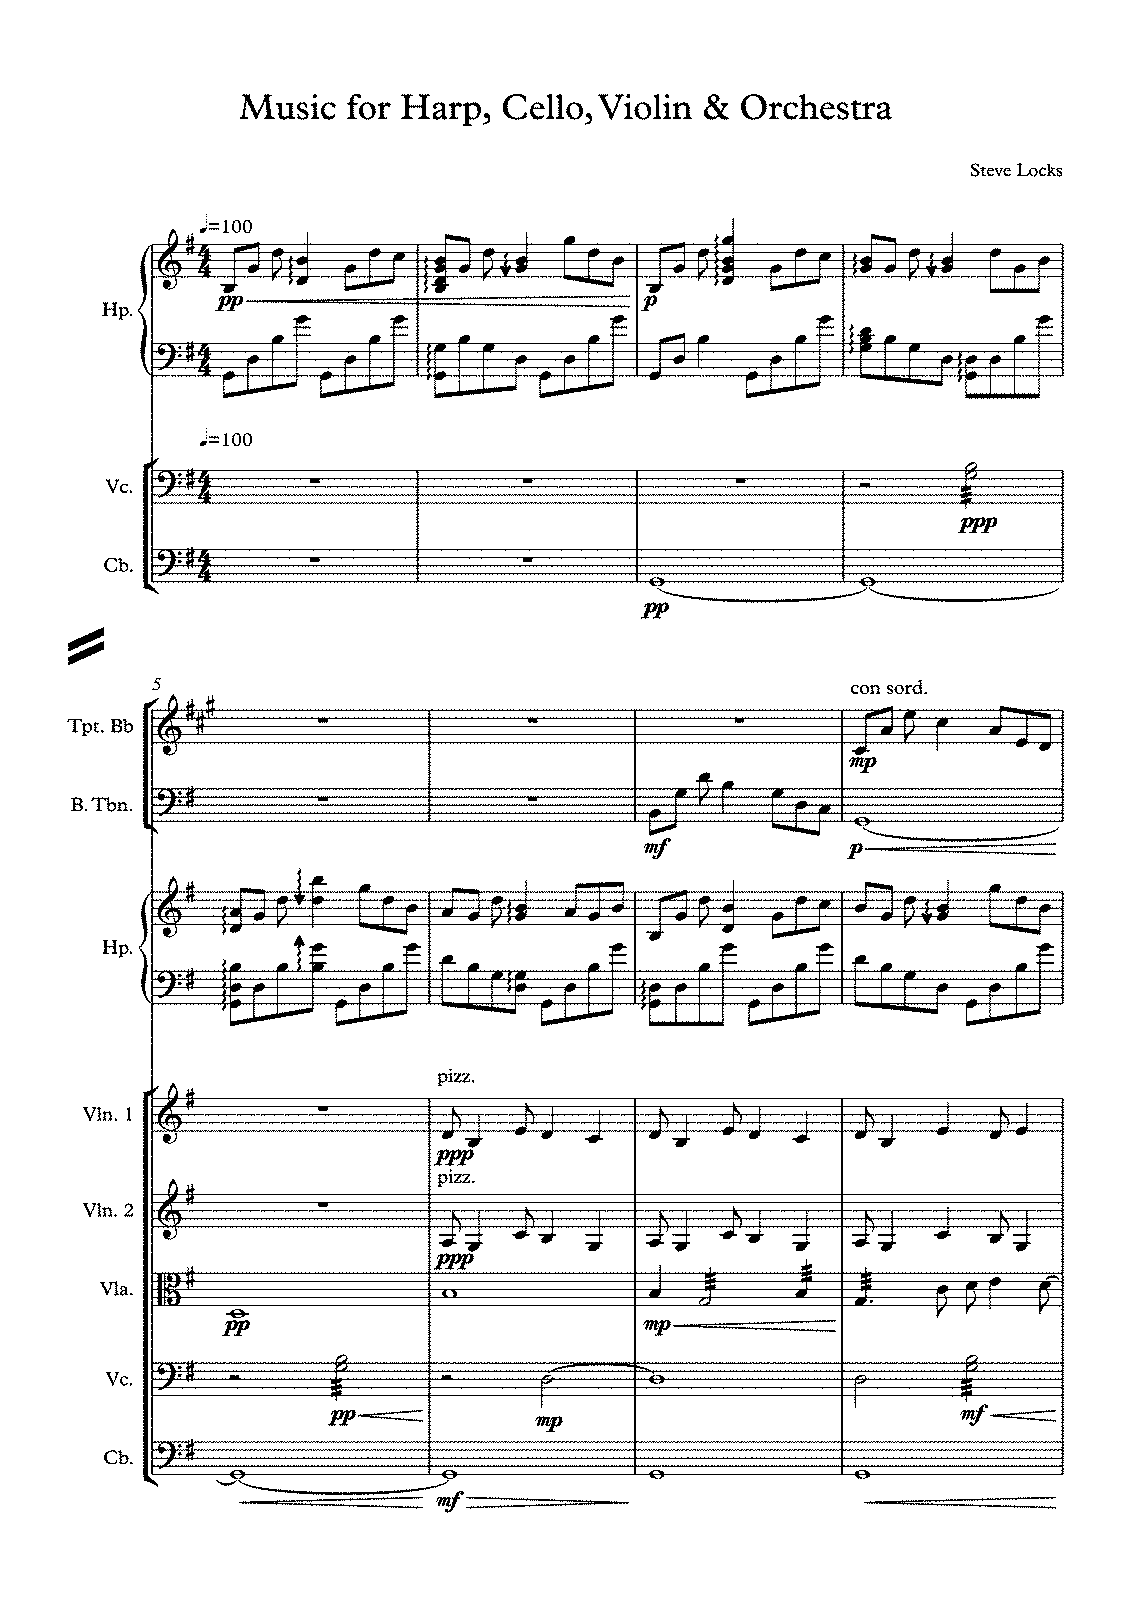 PMLP611783-Music for harp, violin, cello and orchestra - Full Score.pdf